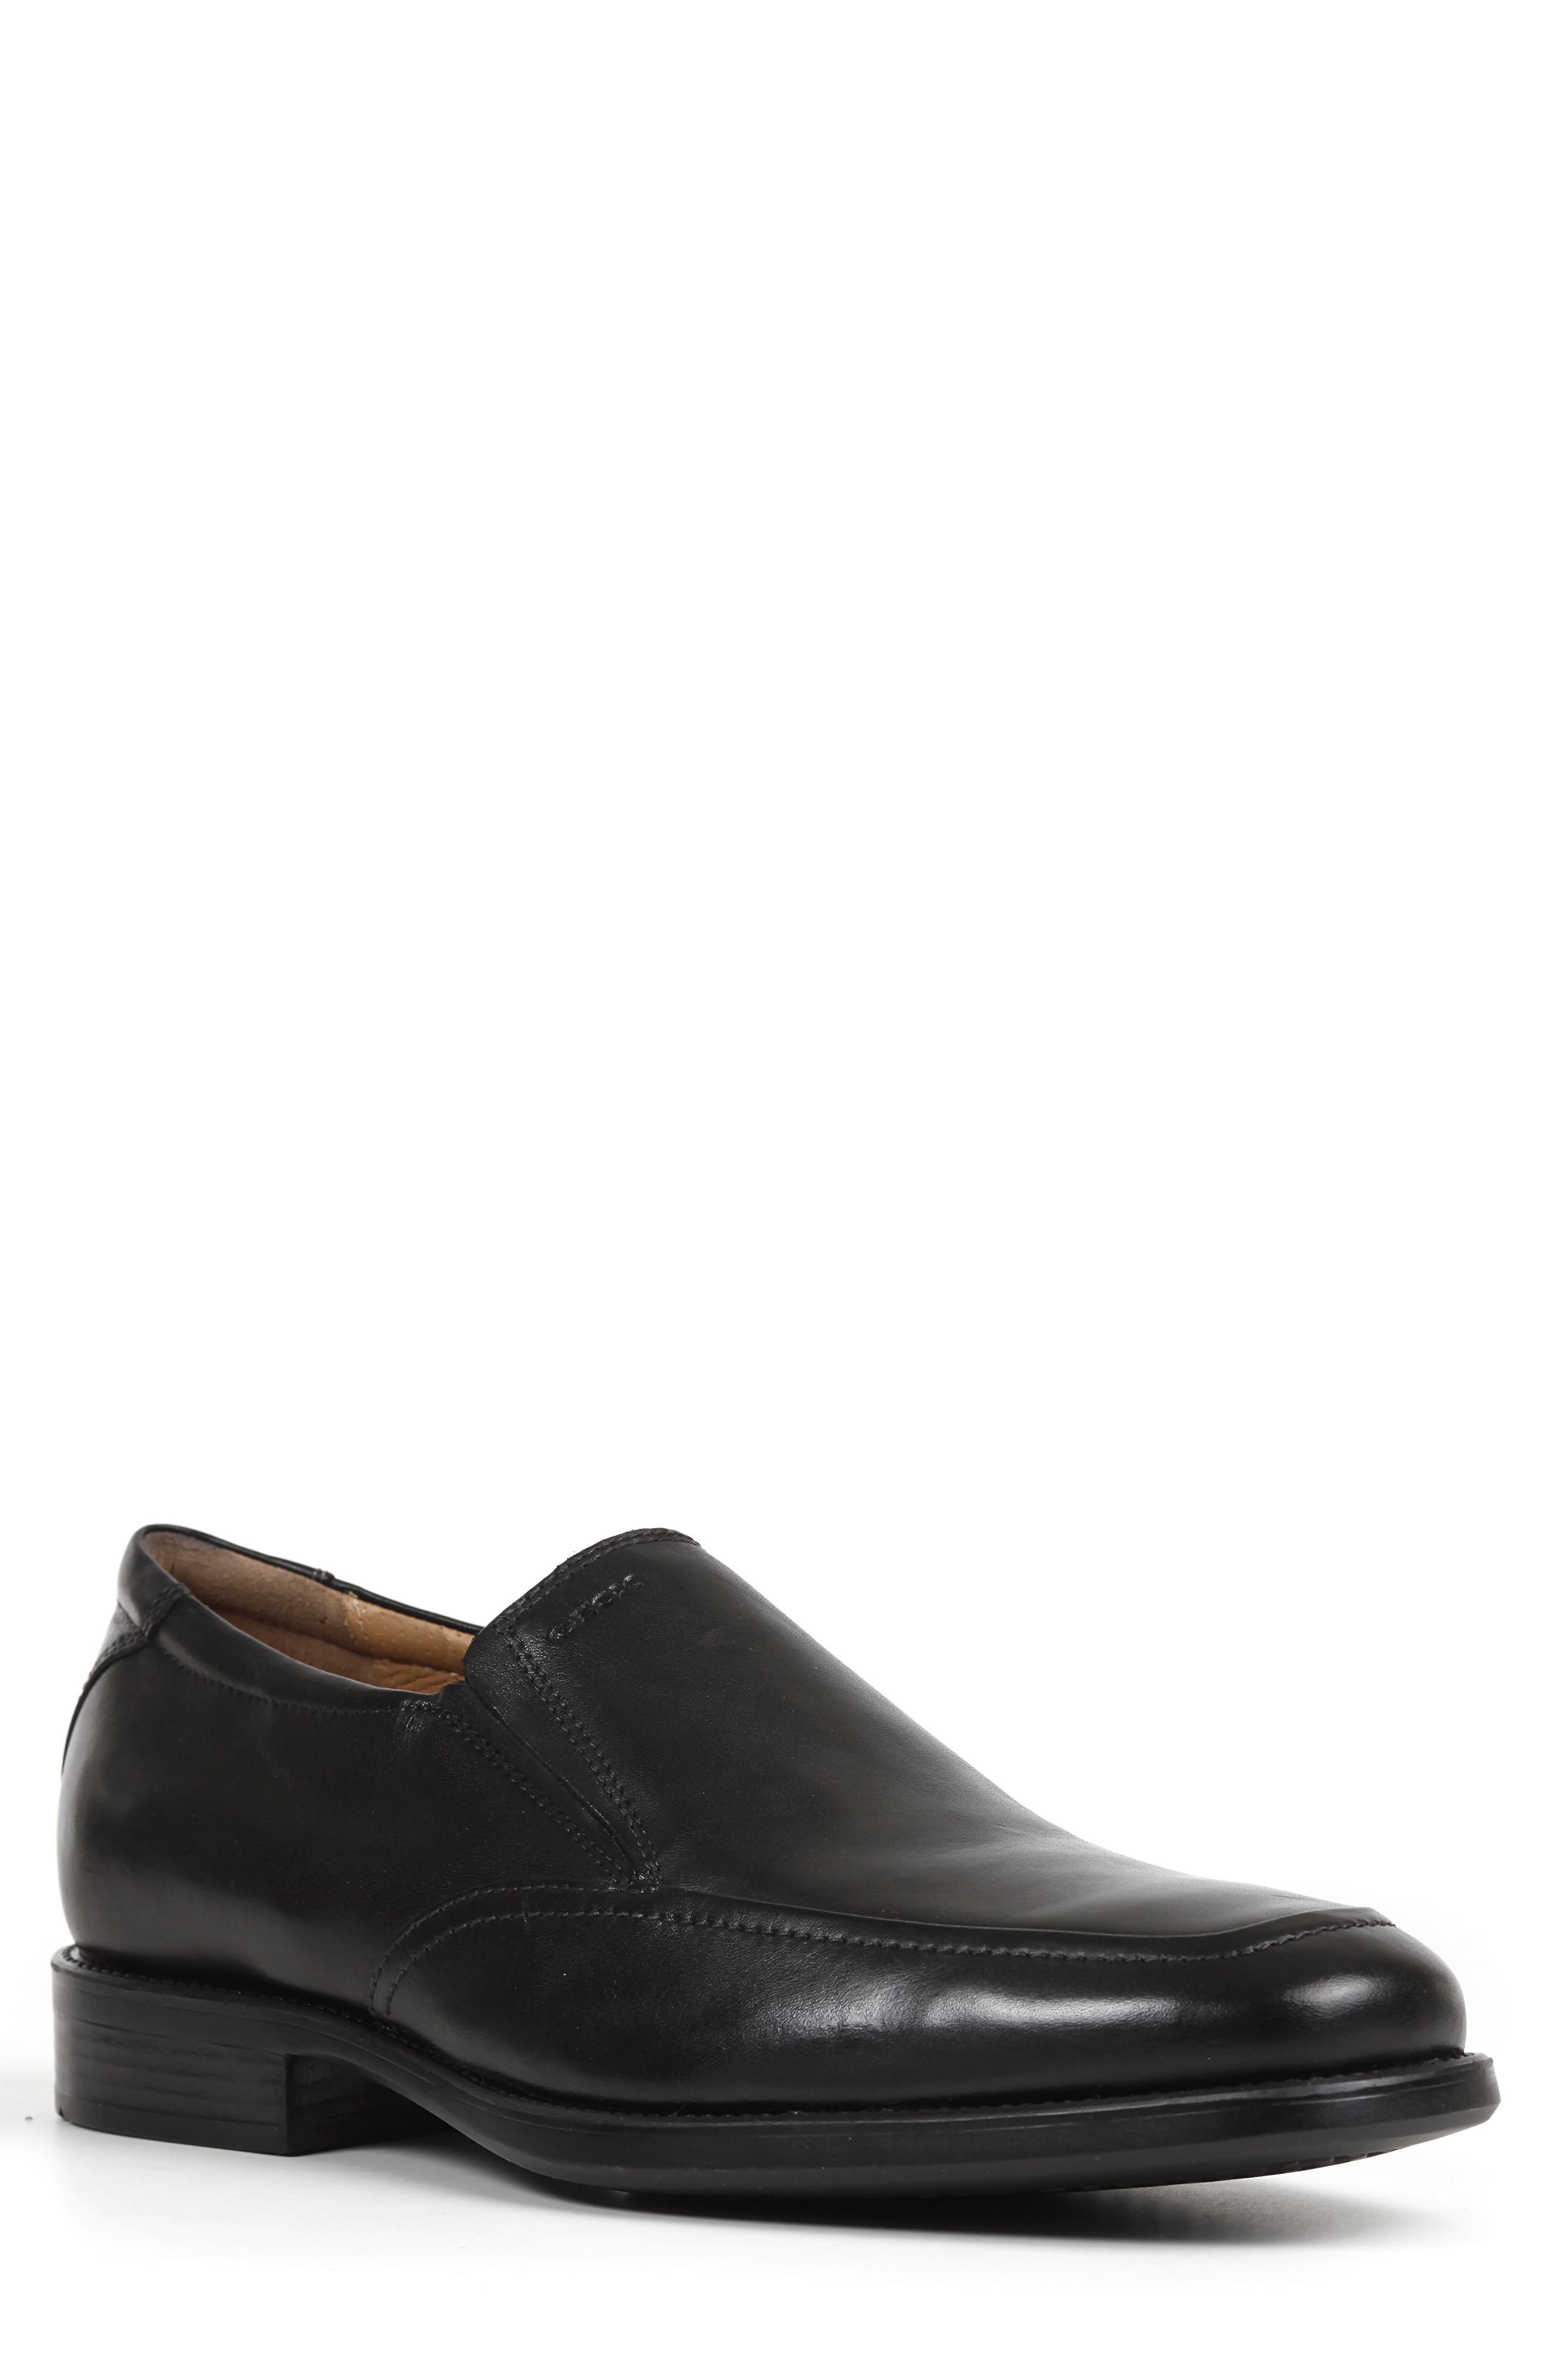 GEOX Federico 9 Venetian Slip-On, Main, color, BLACK LEATHER